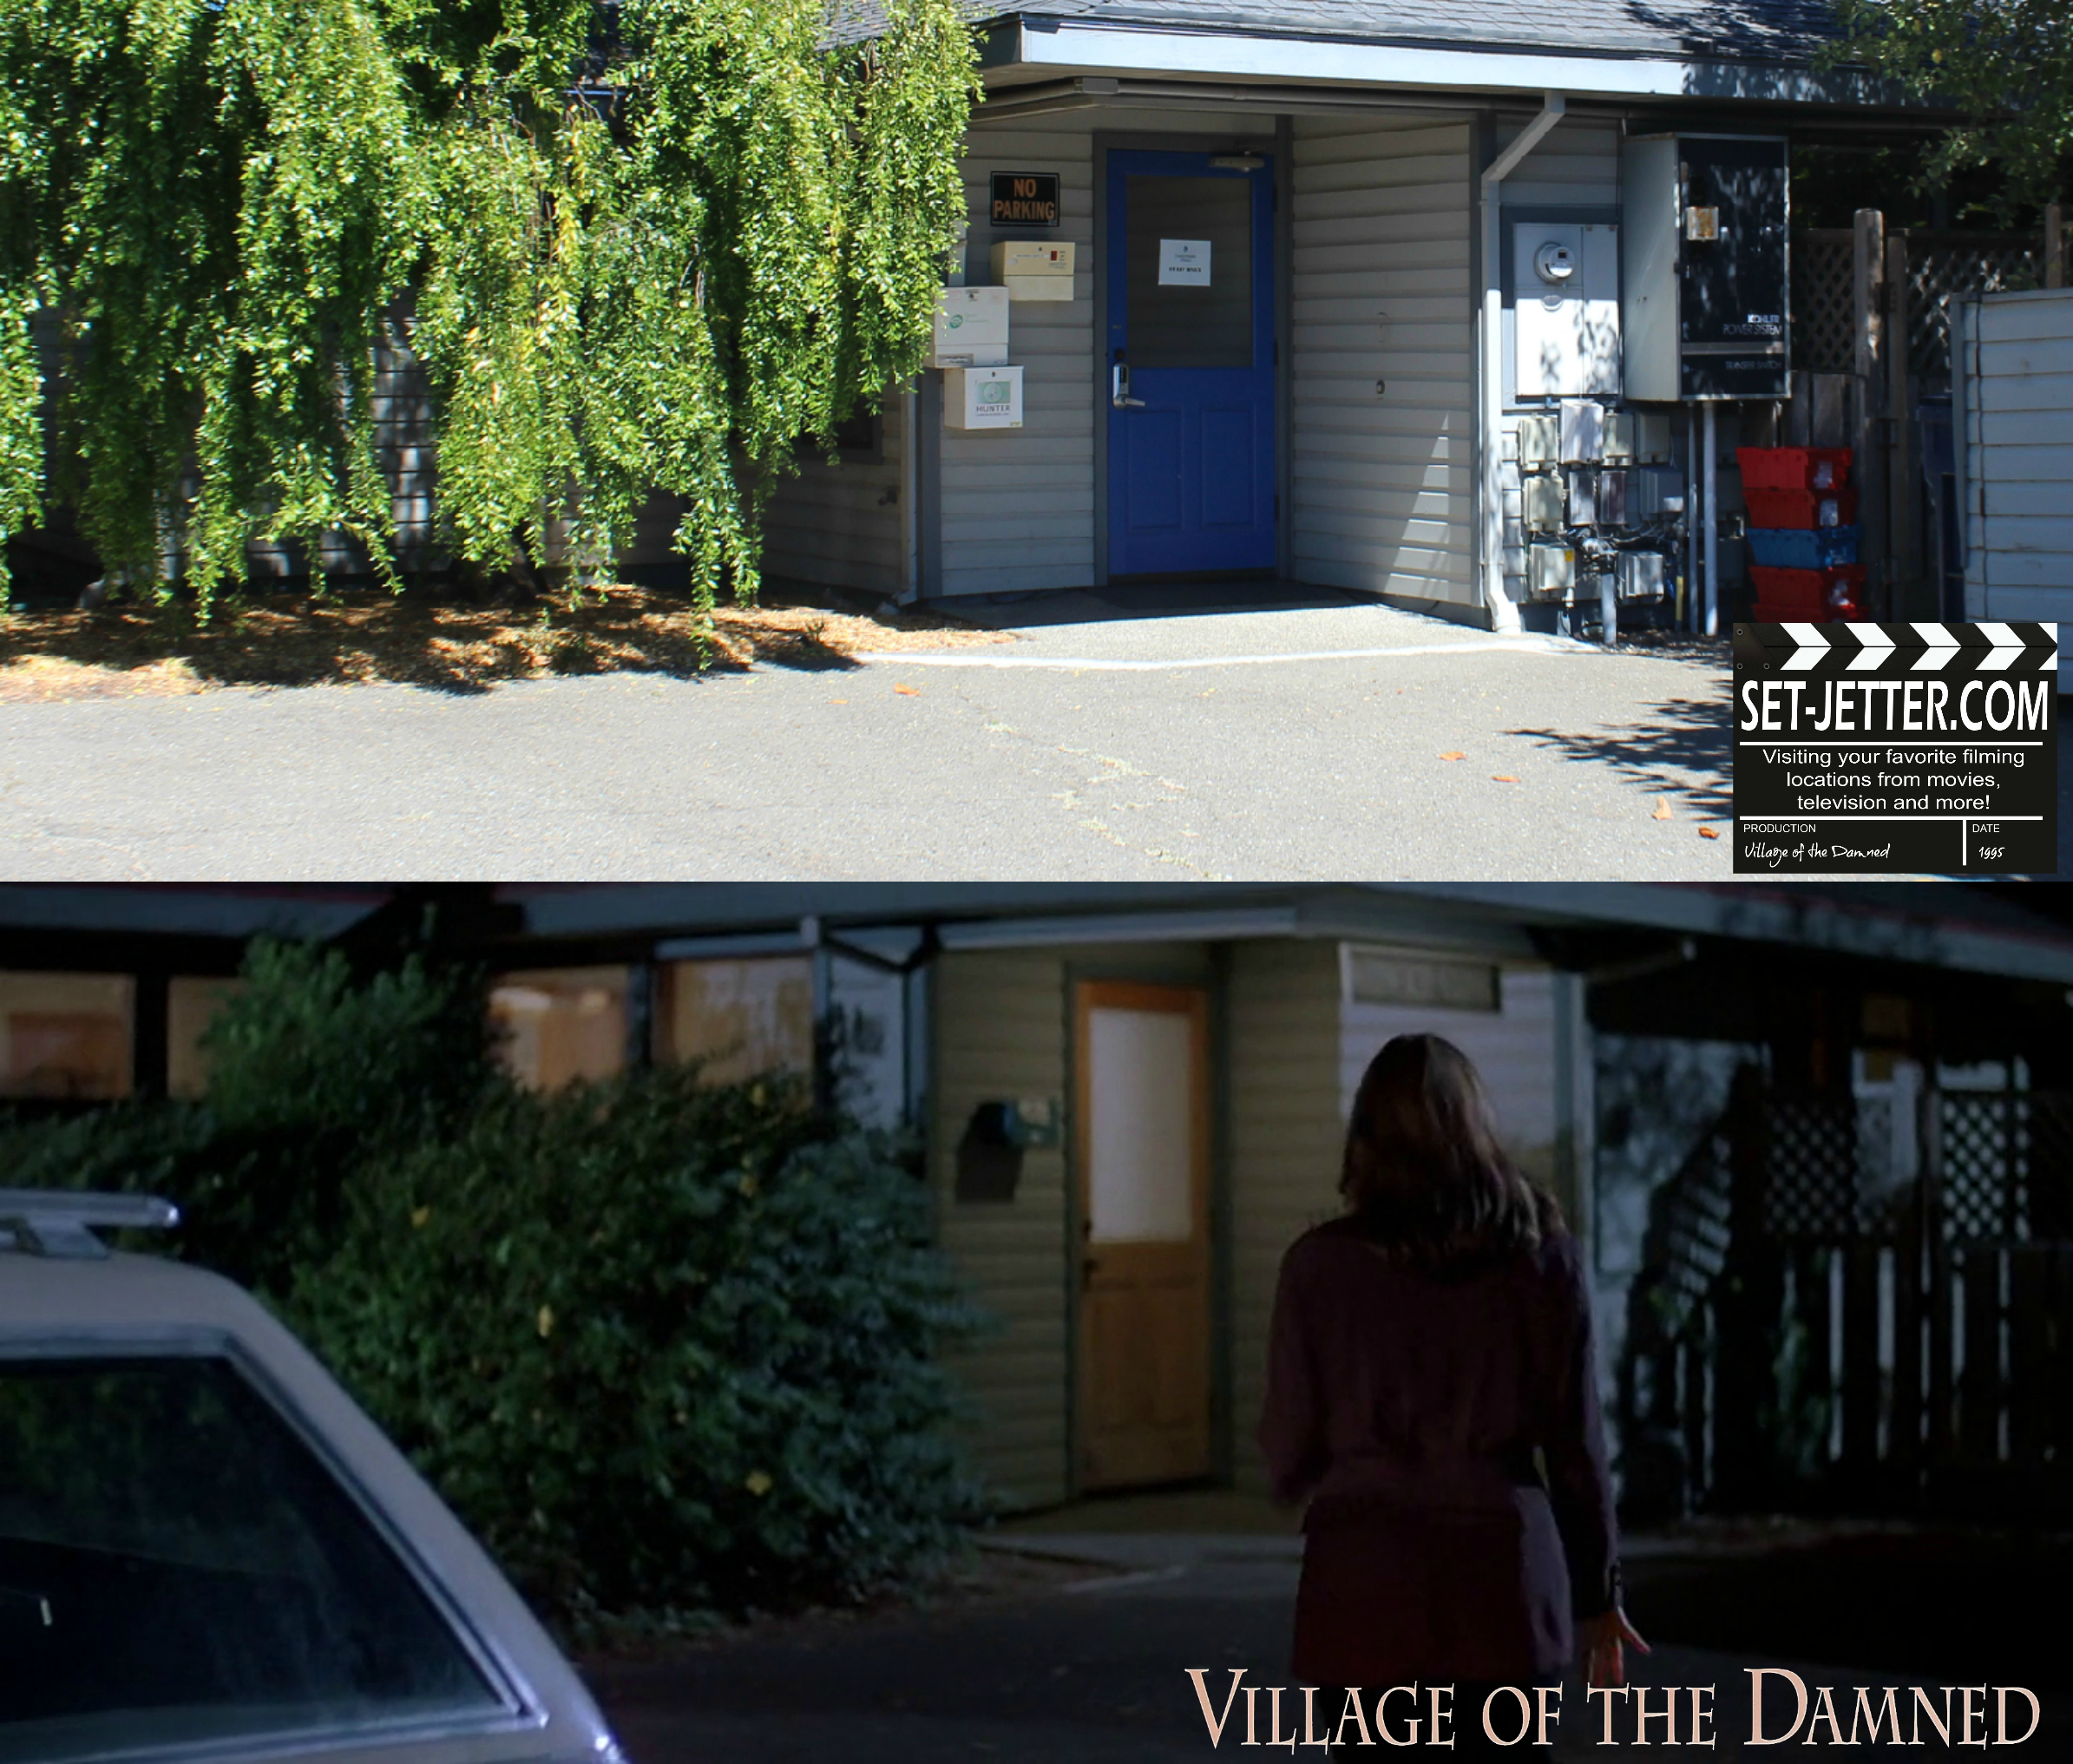 Village of the Damned comparison 137.jpg